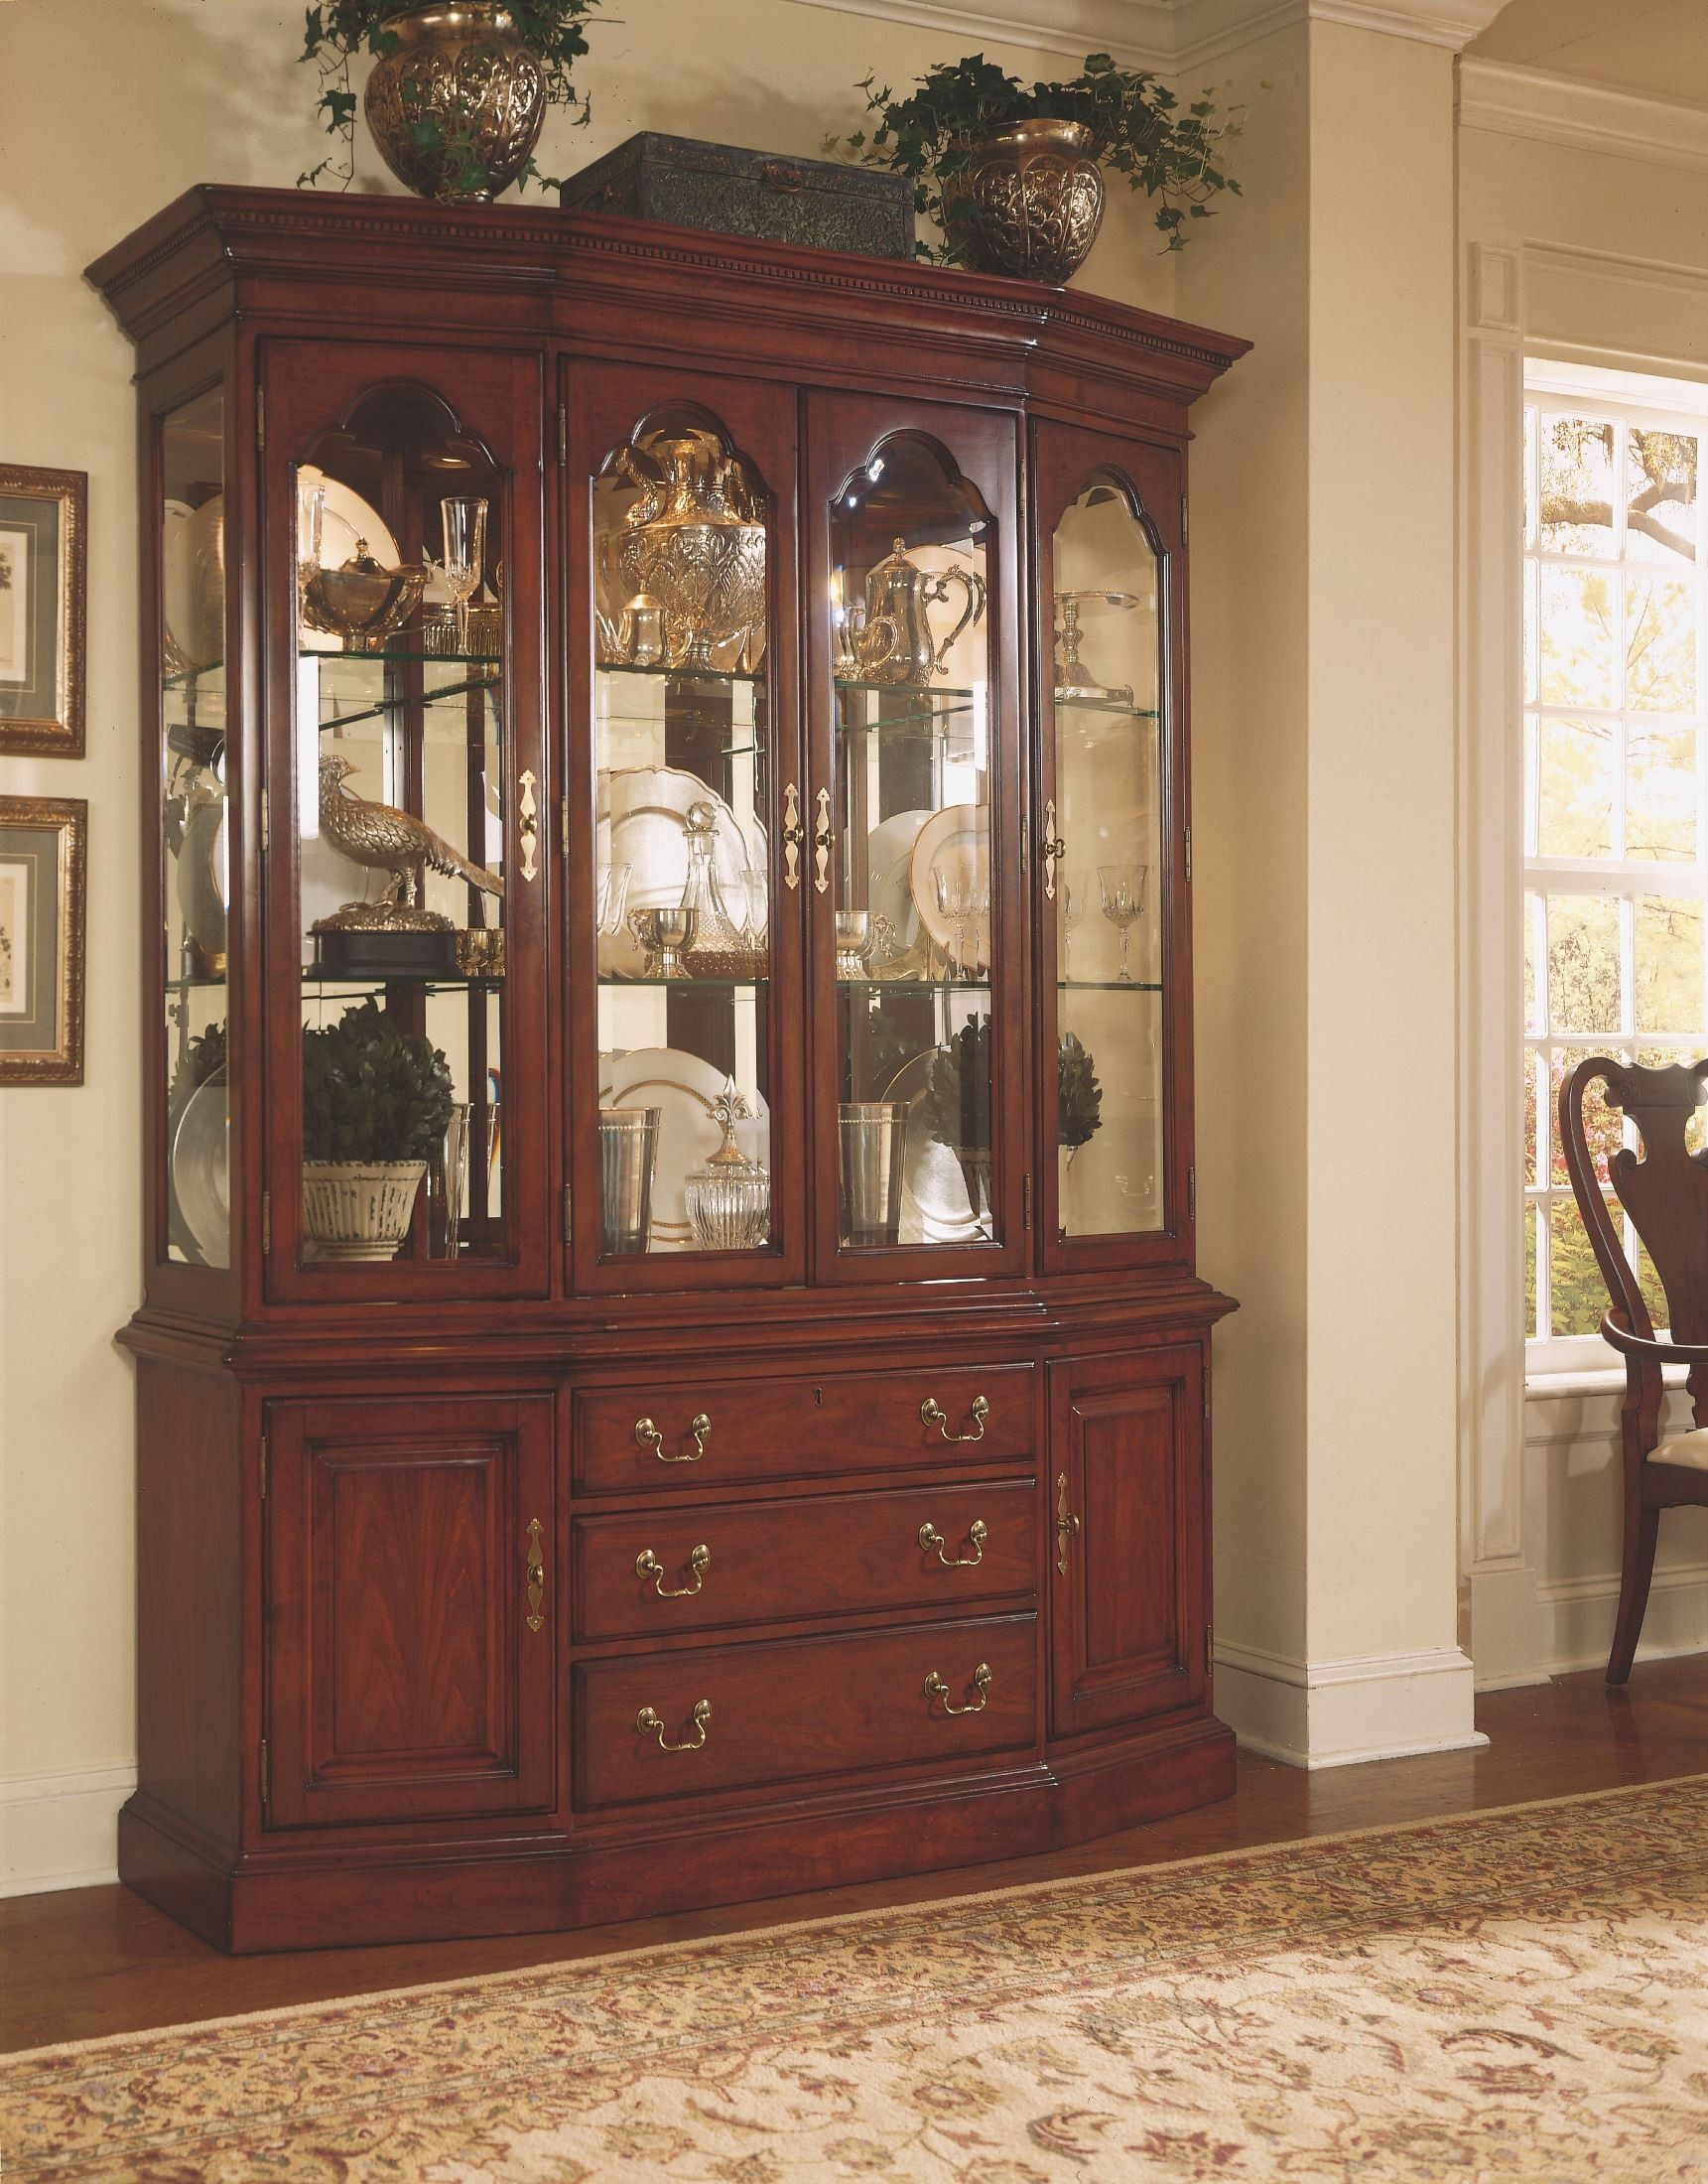 Cherry grove classic antique cherry china cabinet 792 for American classic antiques